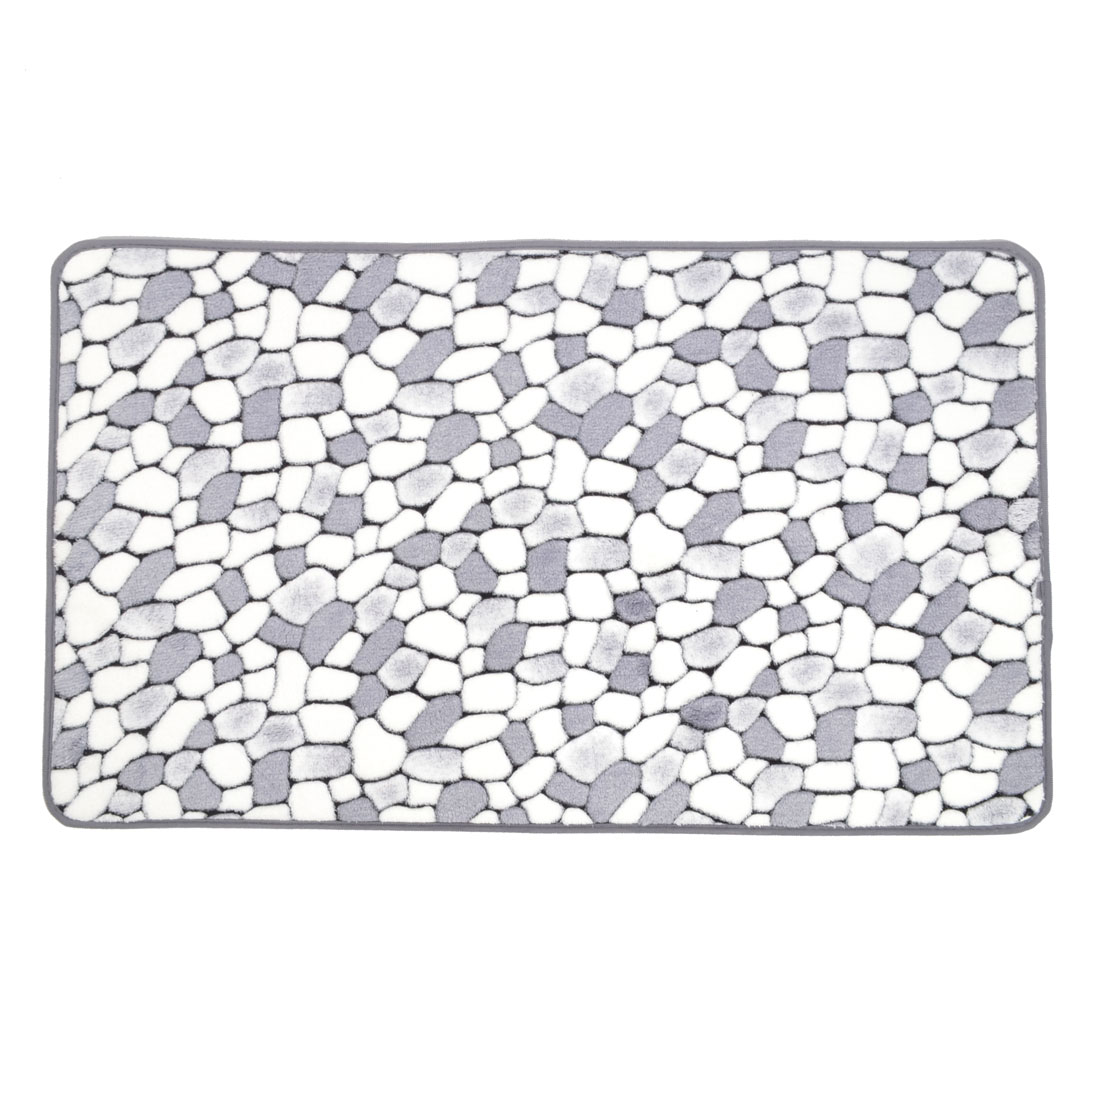 Blue White Coral Fleece Cobblestone Pattern Kitchen Area Rug Carpet 80cm x 50cm